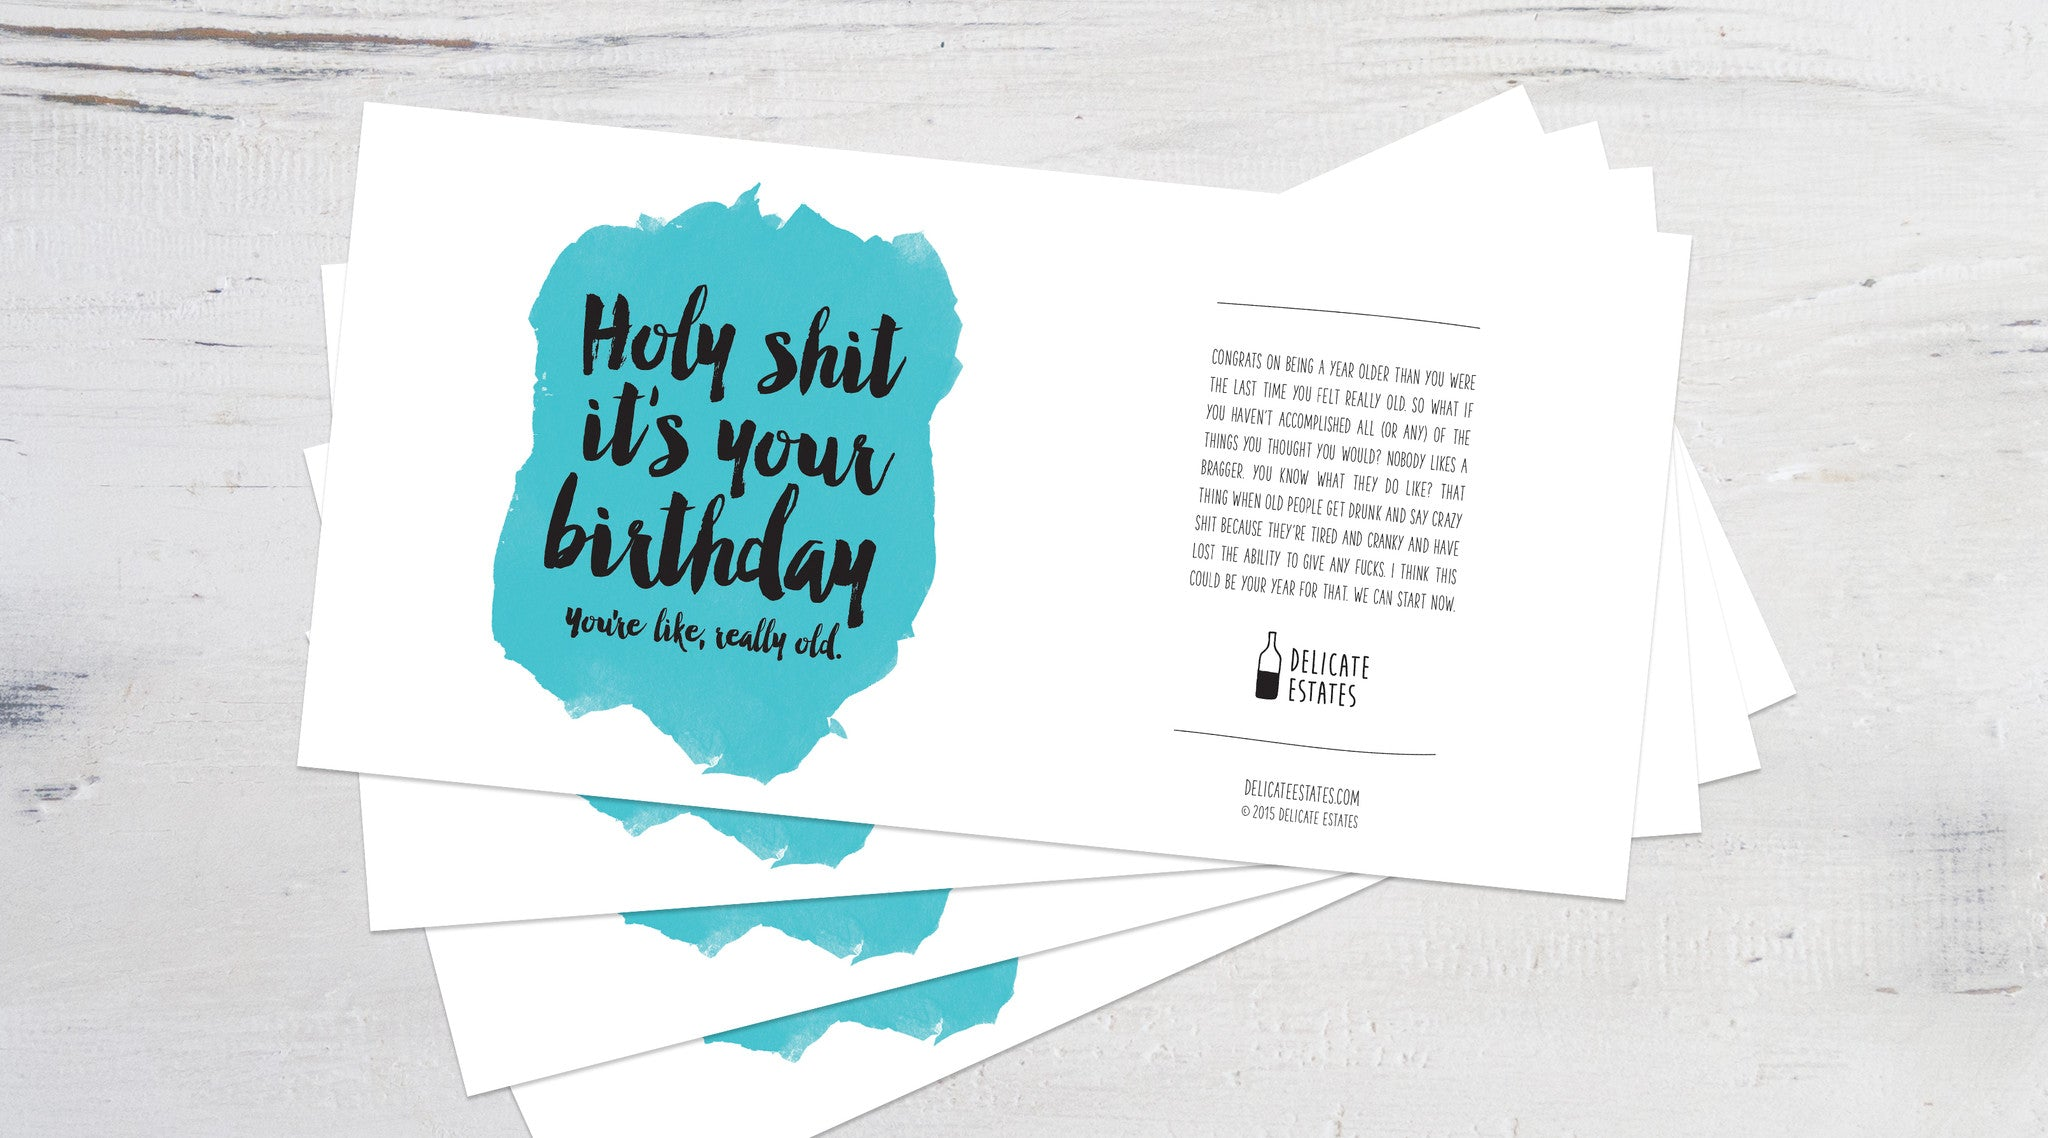 Holy shit it's your birthday wine label greeting card delicate estates 4 pack